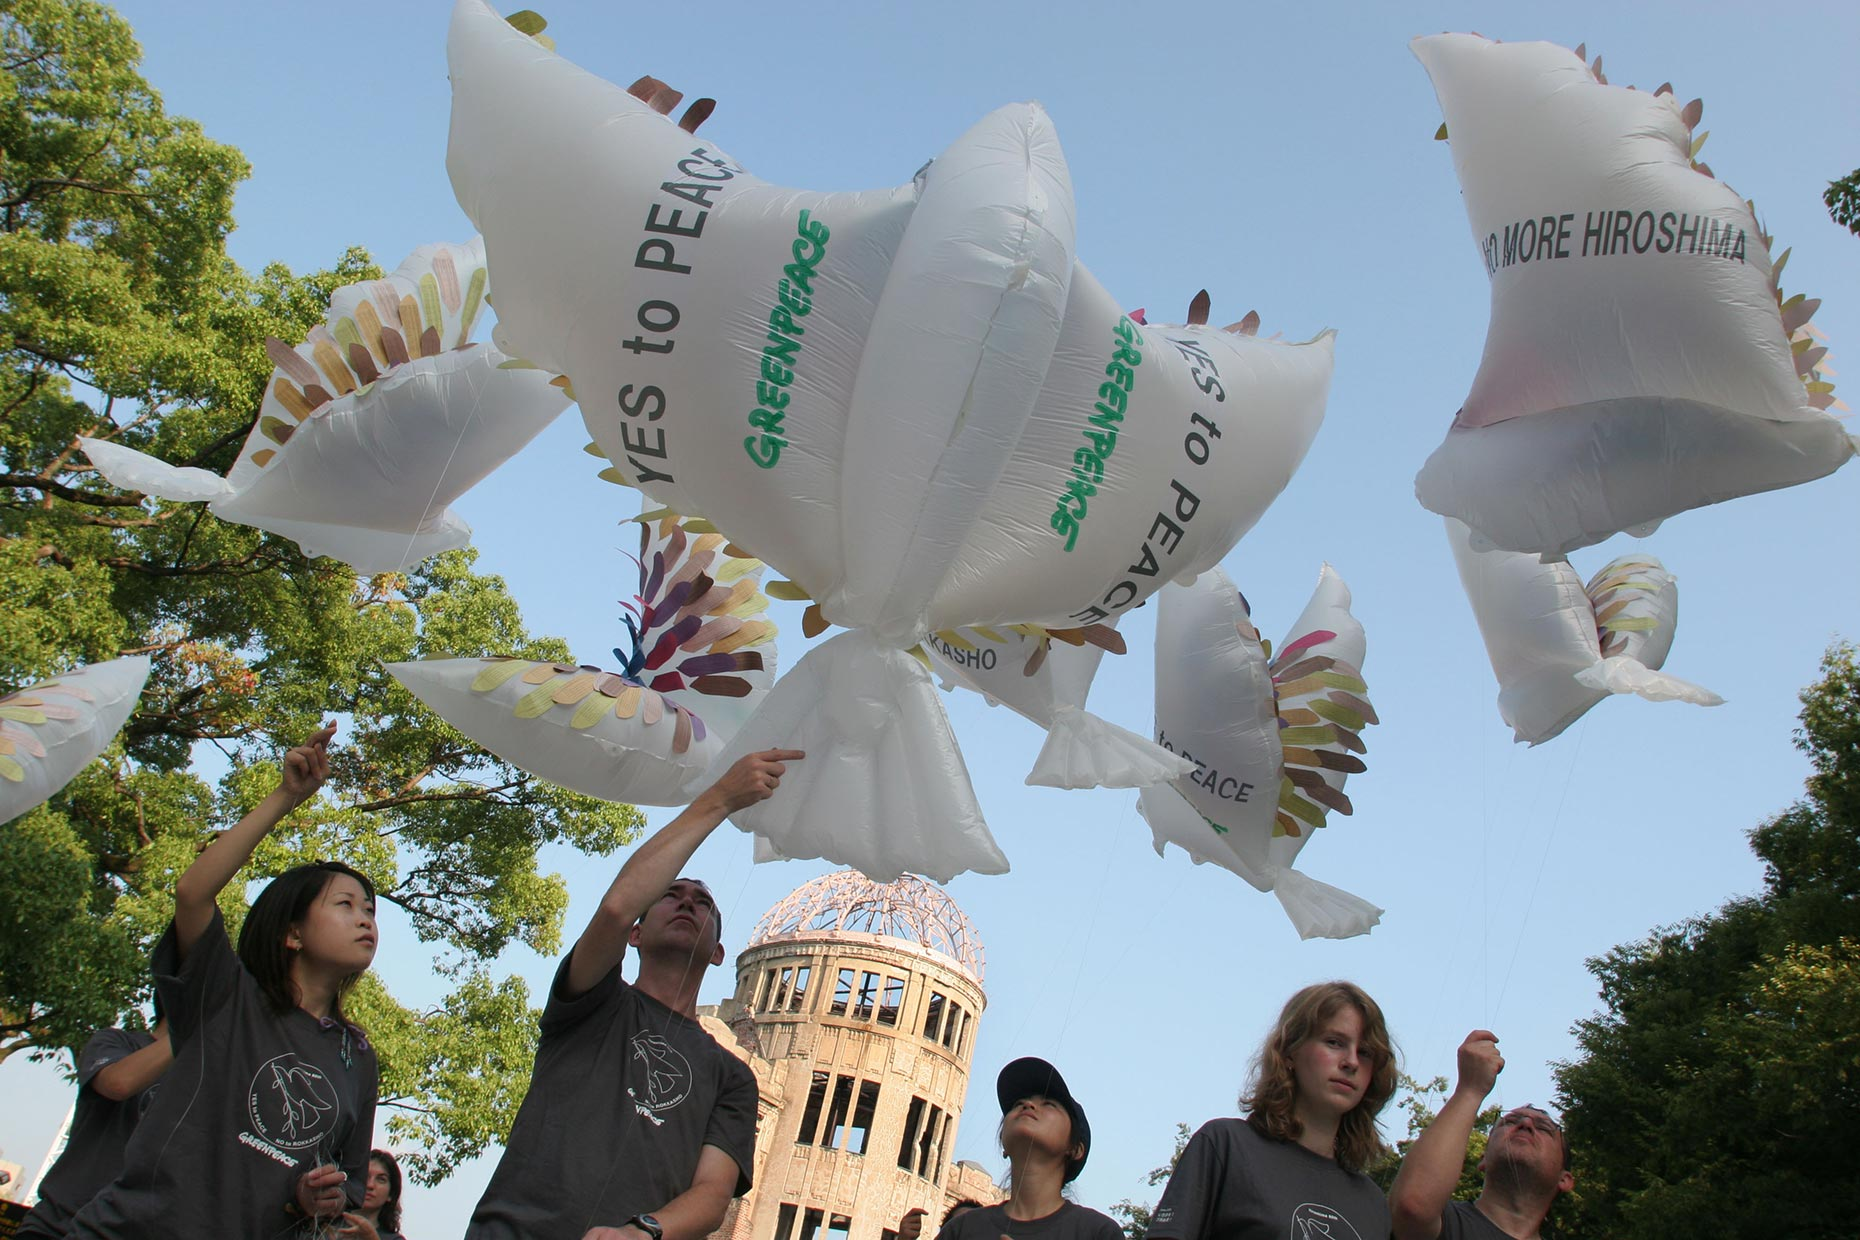 Peace dove action in Hiroshima, by Scotland Greenpeace photographer